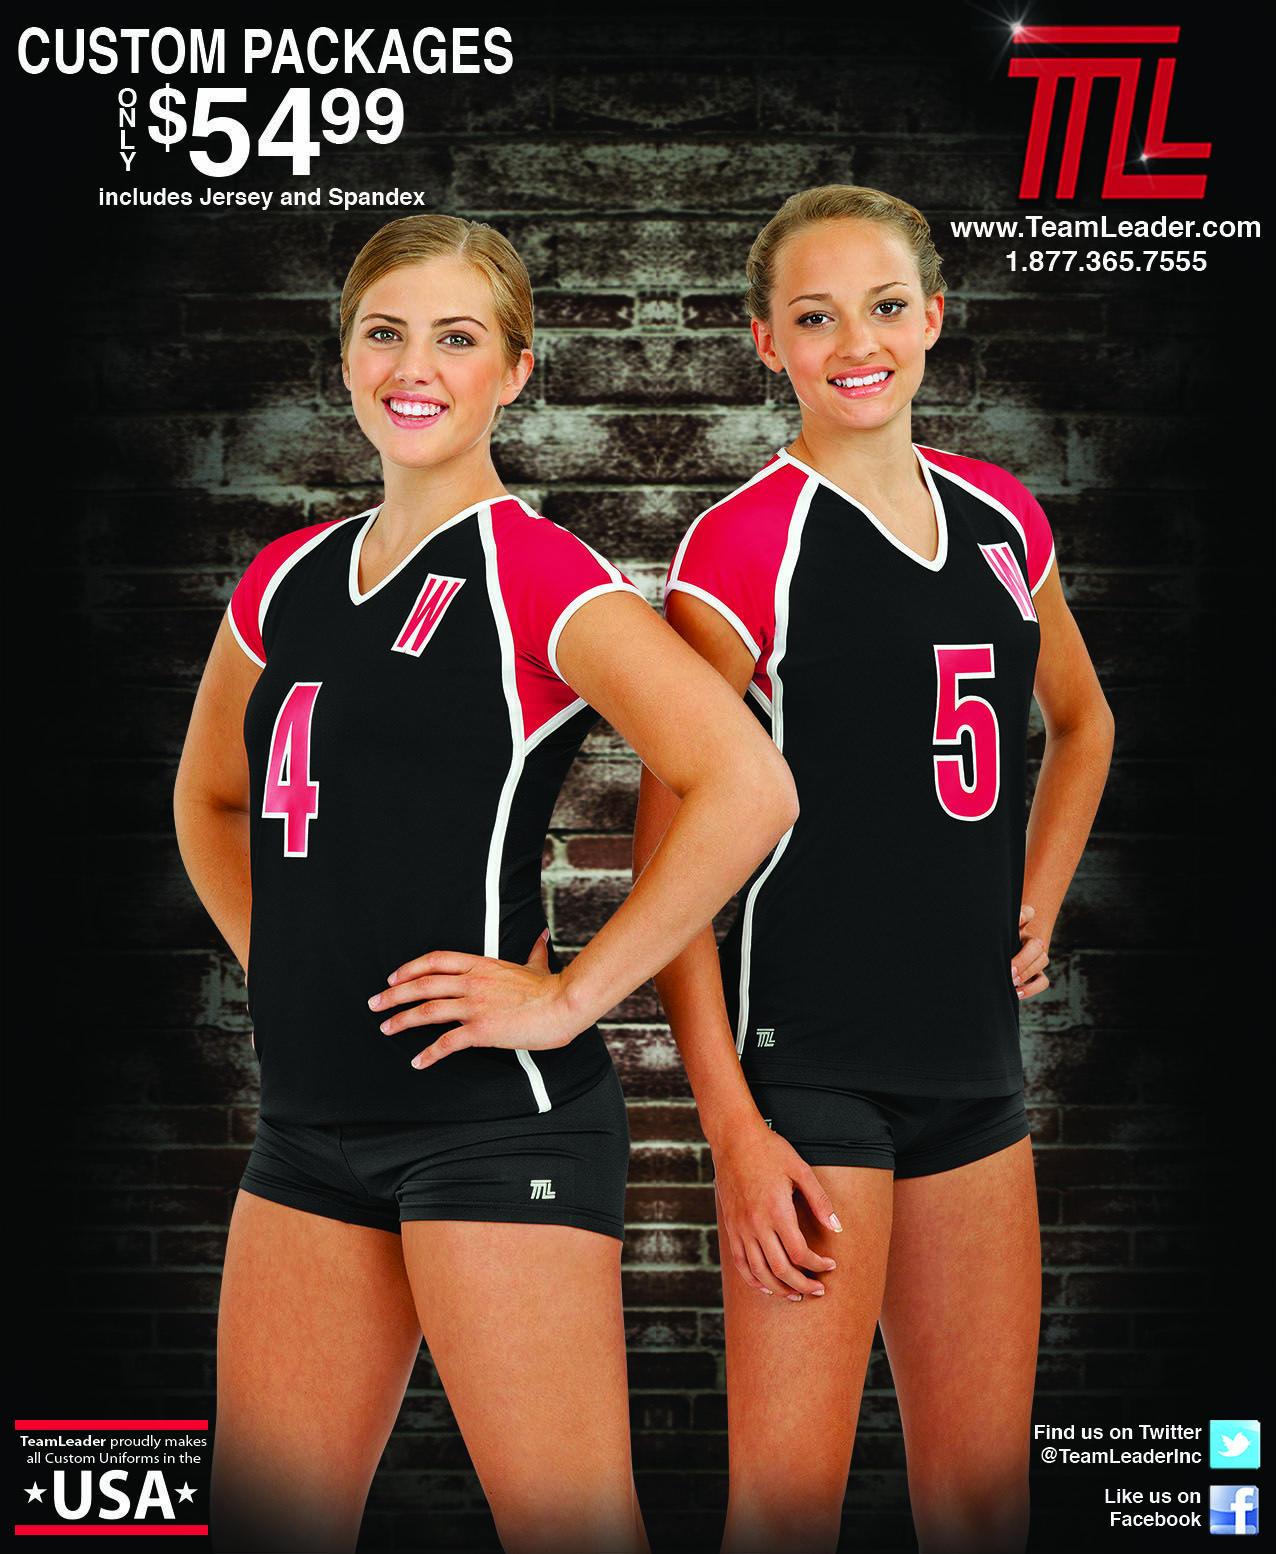 Custom Volleyball Packages Fit For Your Budget Sports Fashion Men Volleyball Uniforms Volleyball